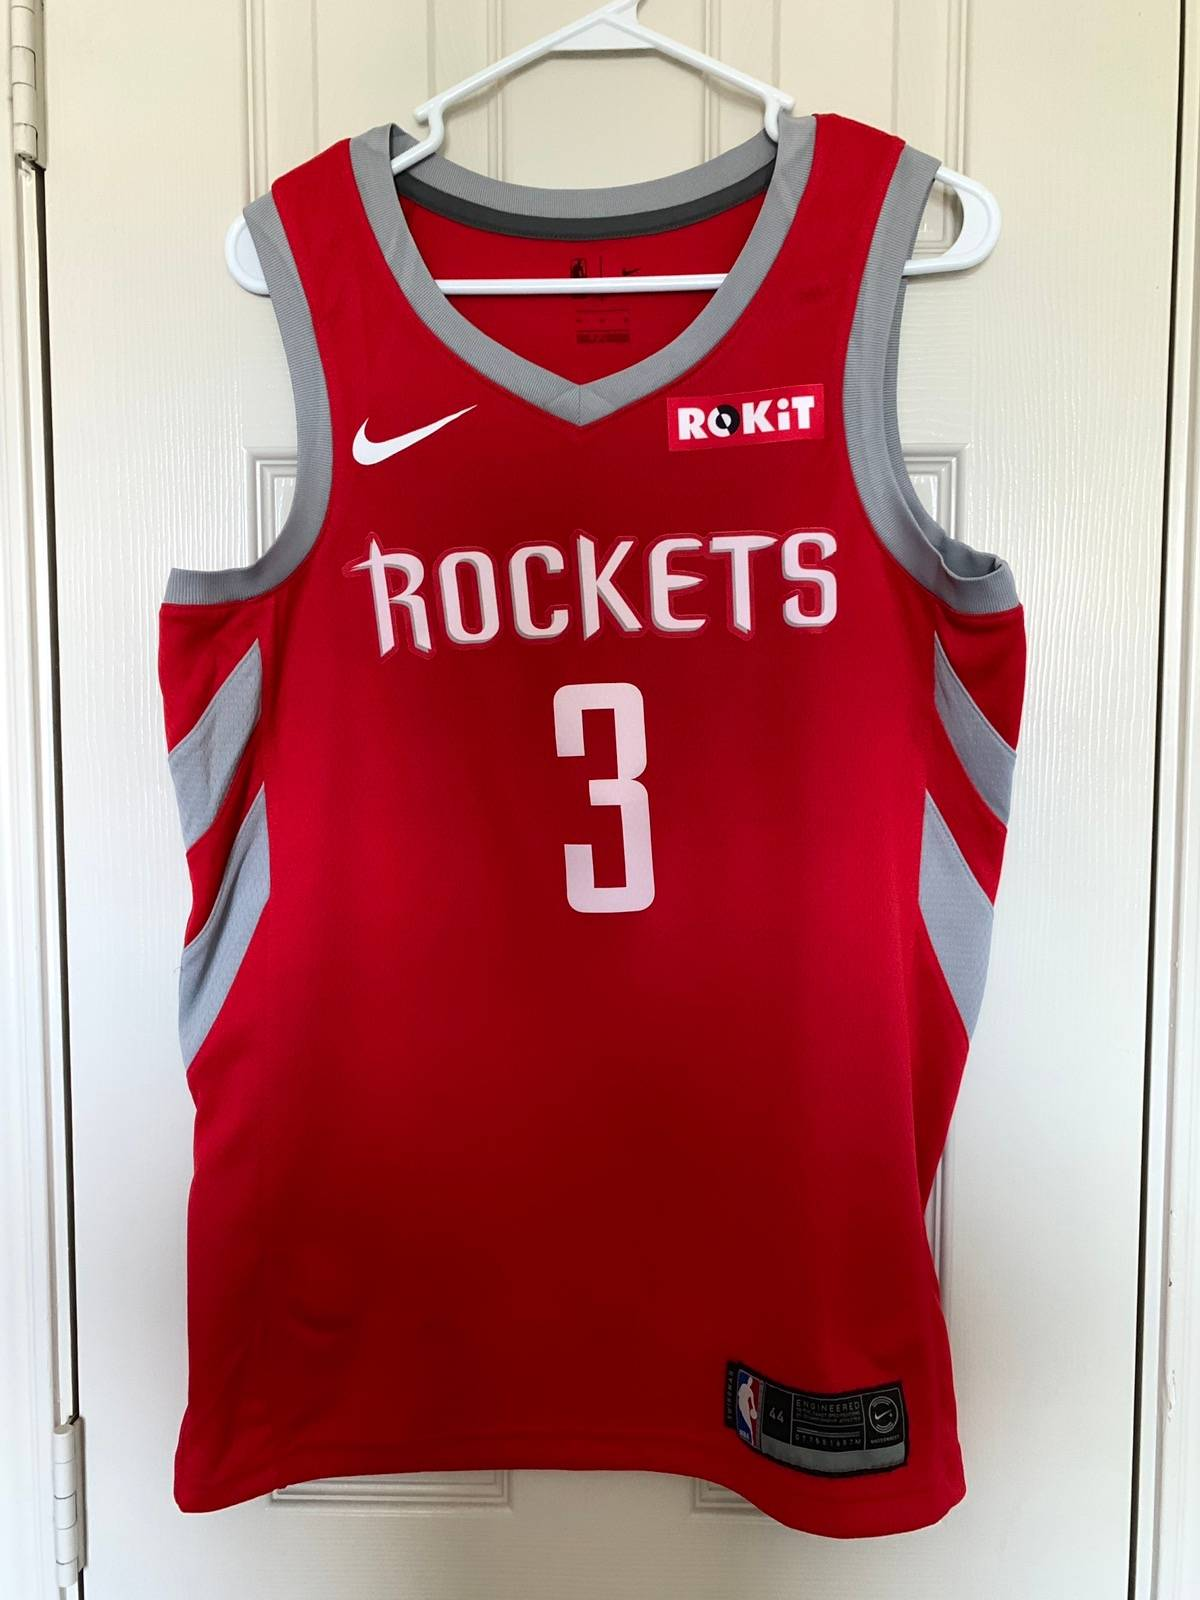 promo code 362e1 537c5 Nike Chris Paul Houston Rockets Jersey Size M $35